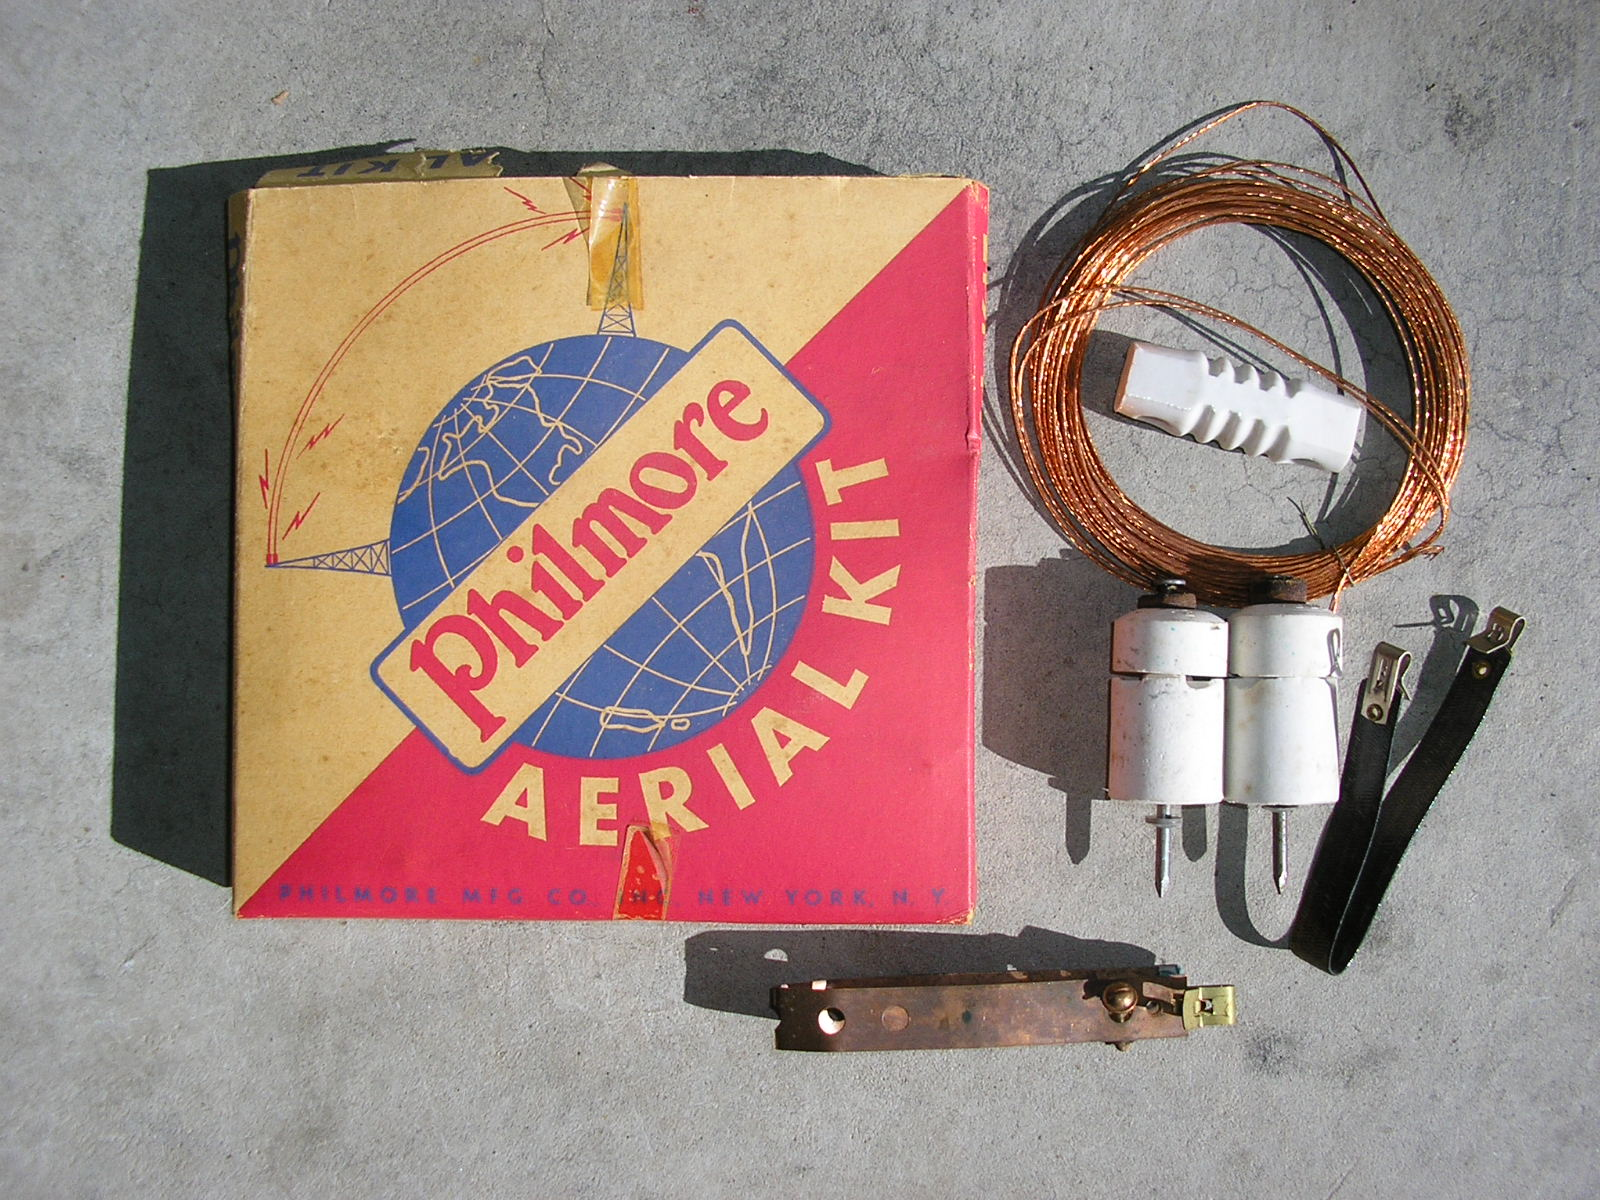 Crystal Radios Fox Hole For Me It All Started Here N6cc Radio Circuit Philmore Aerial Kit